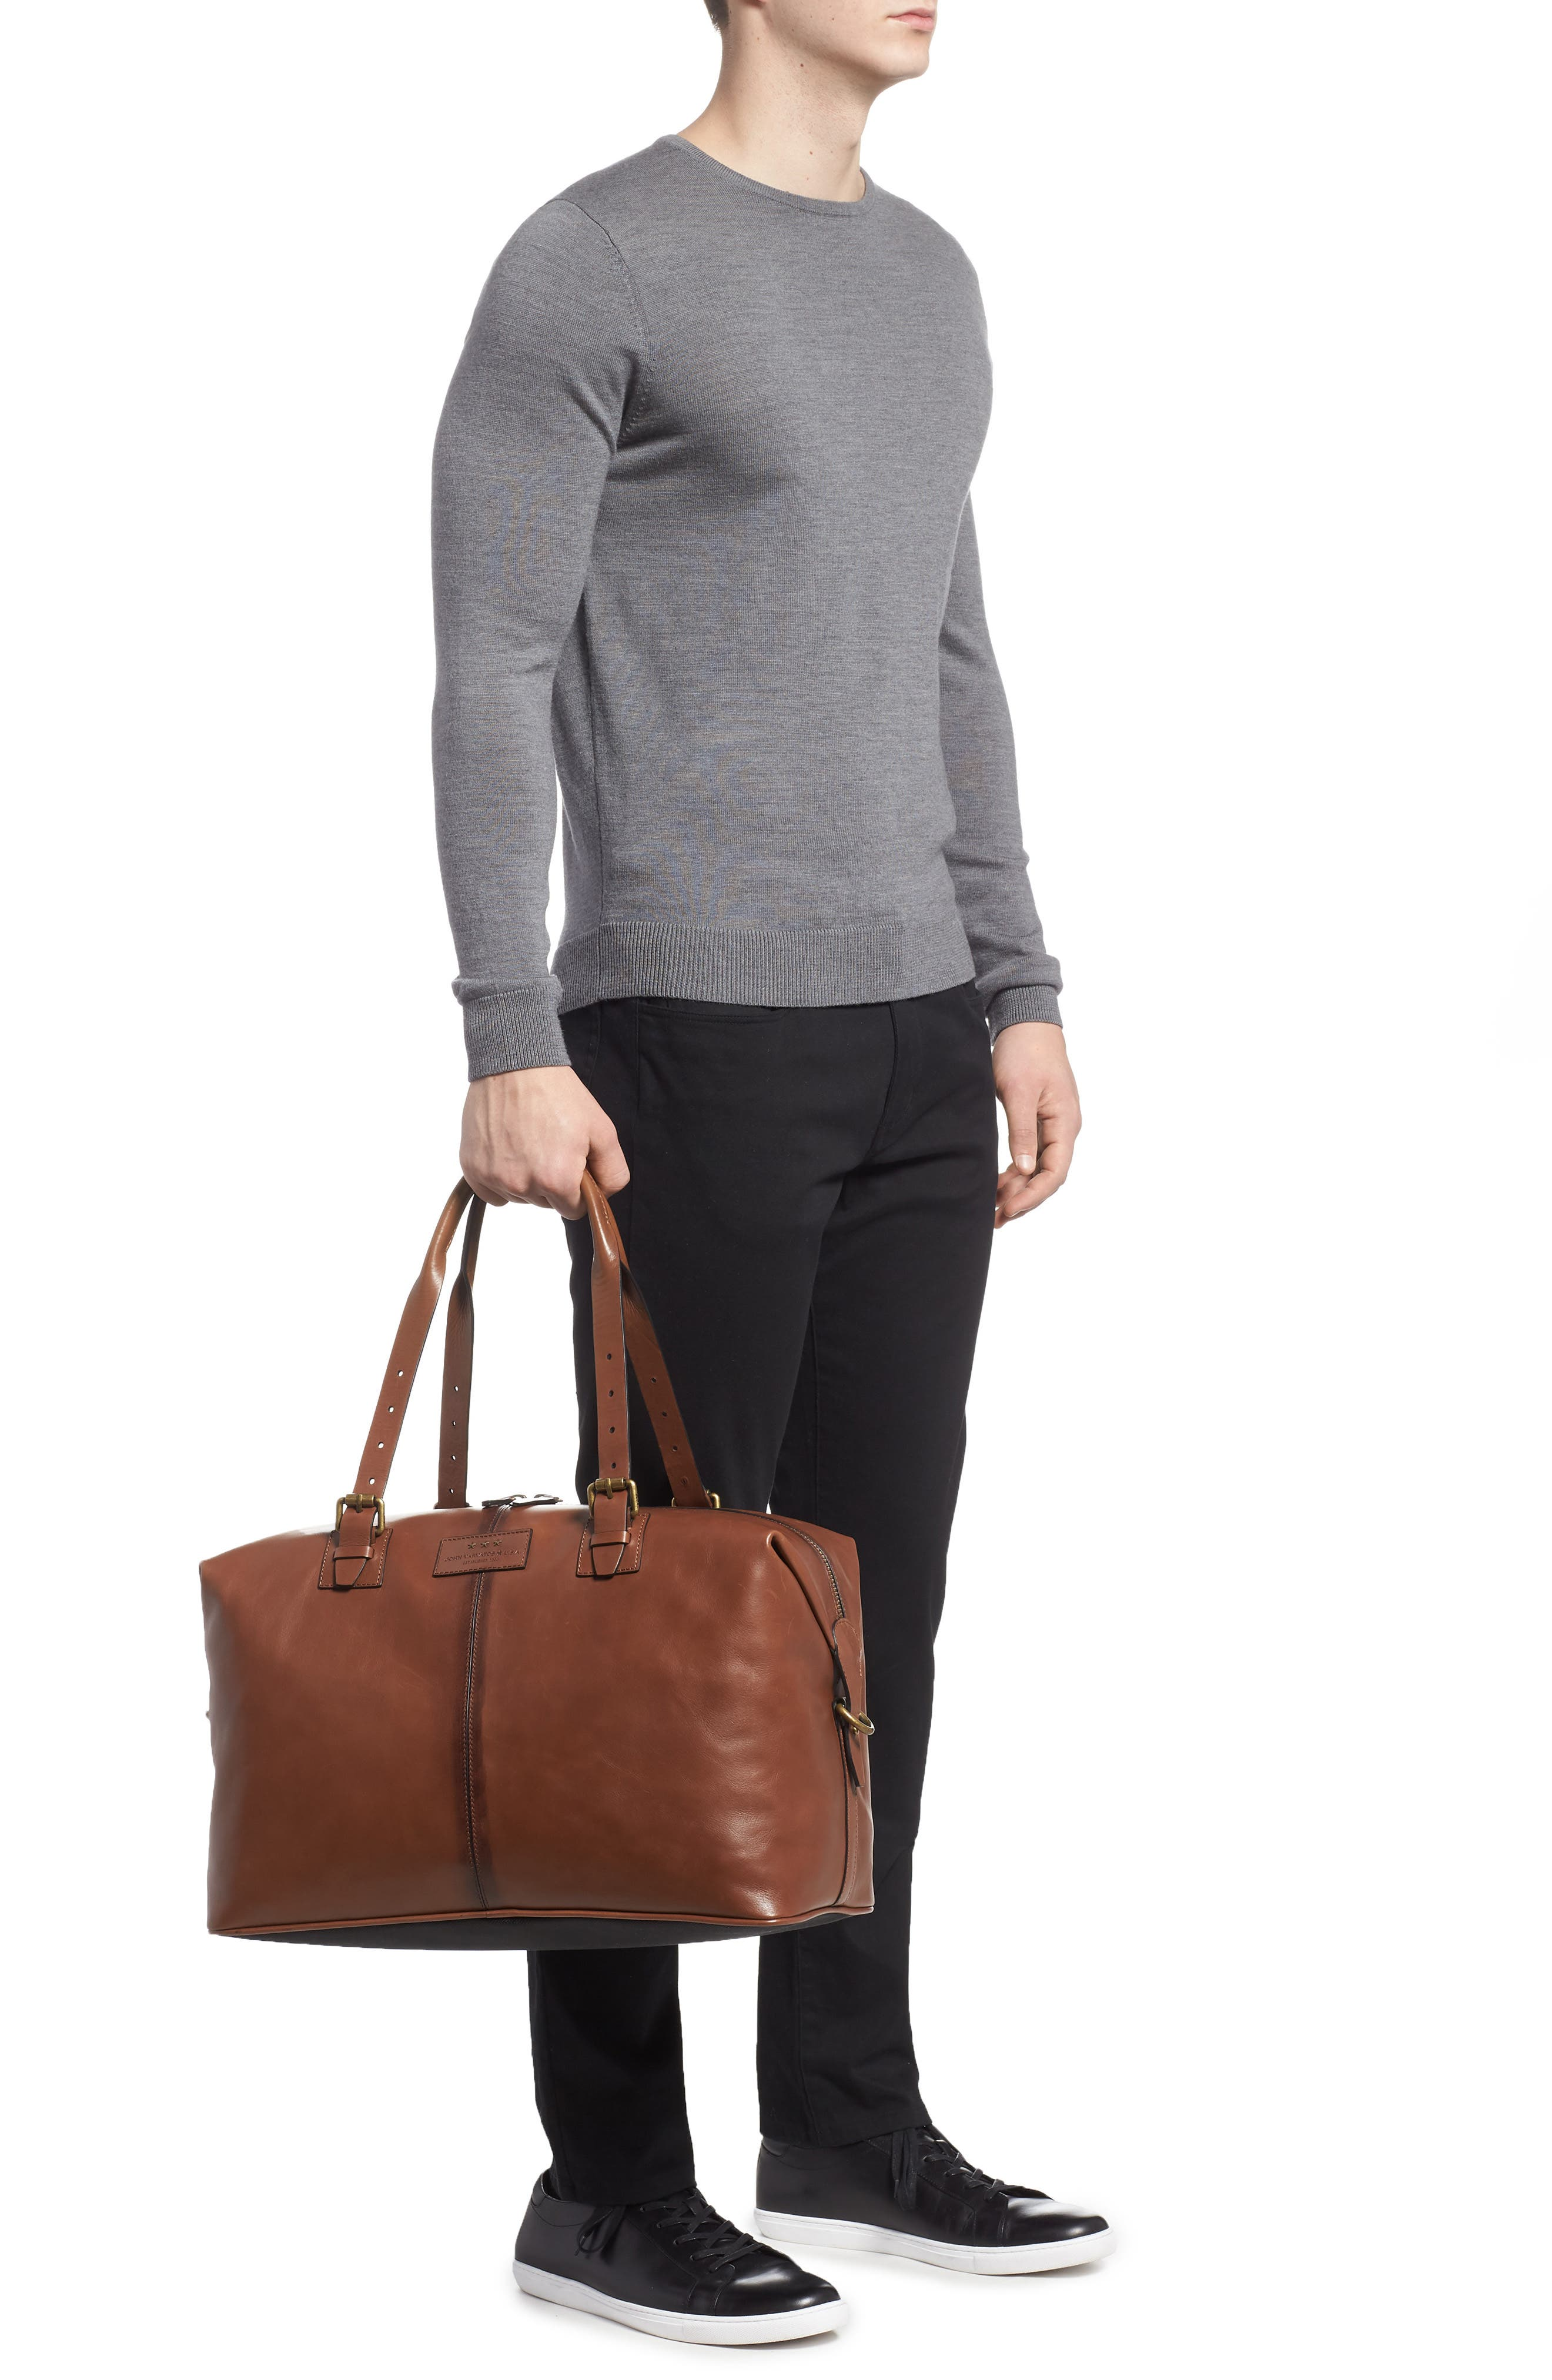 Heritage Leather Duffel Bag,                             Alternate thumbnail 2, color,                             Brownstone